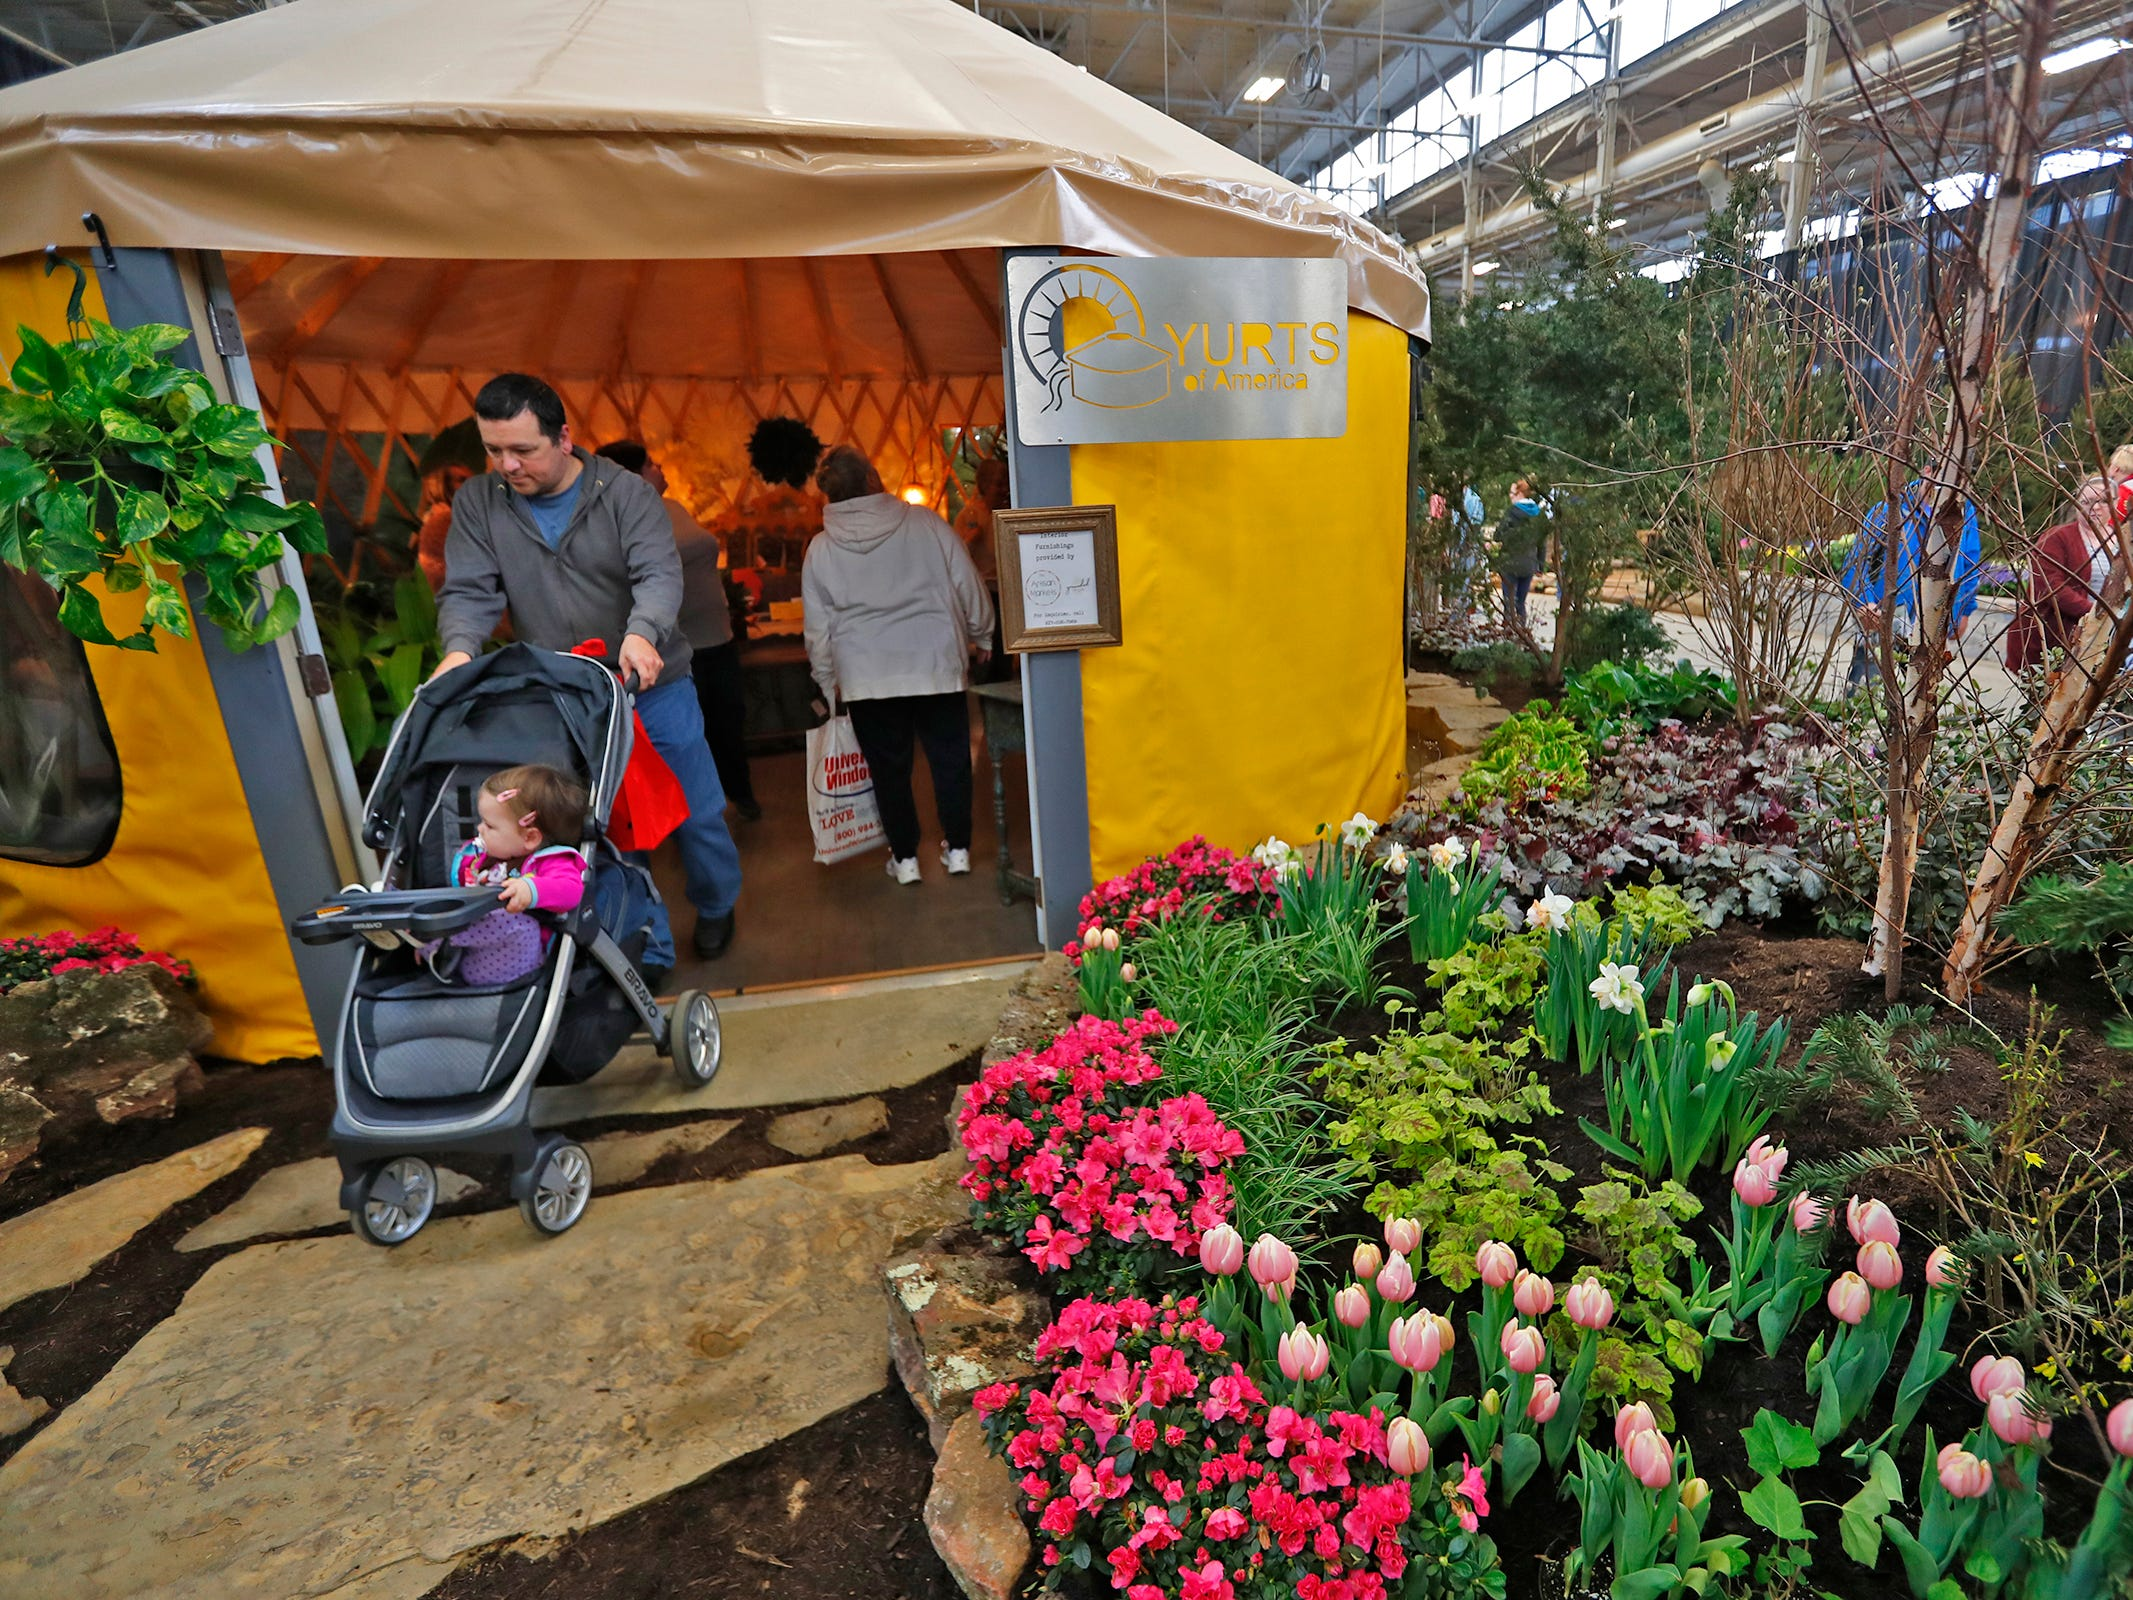 People check out a Yurts of America yurt at the Indiana Flower + Patio Show, at the Indiana State Fairgrounds, Sunday, March 10, 2019.  New Leaf Landscape Design Studio worked with others to display the temporary living space.